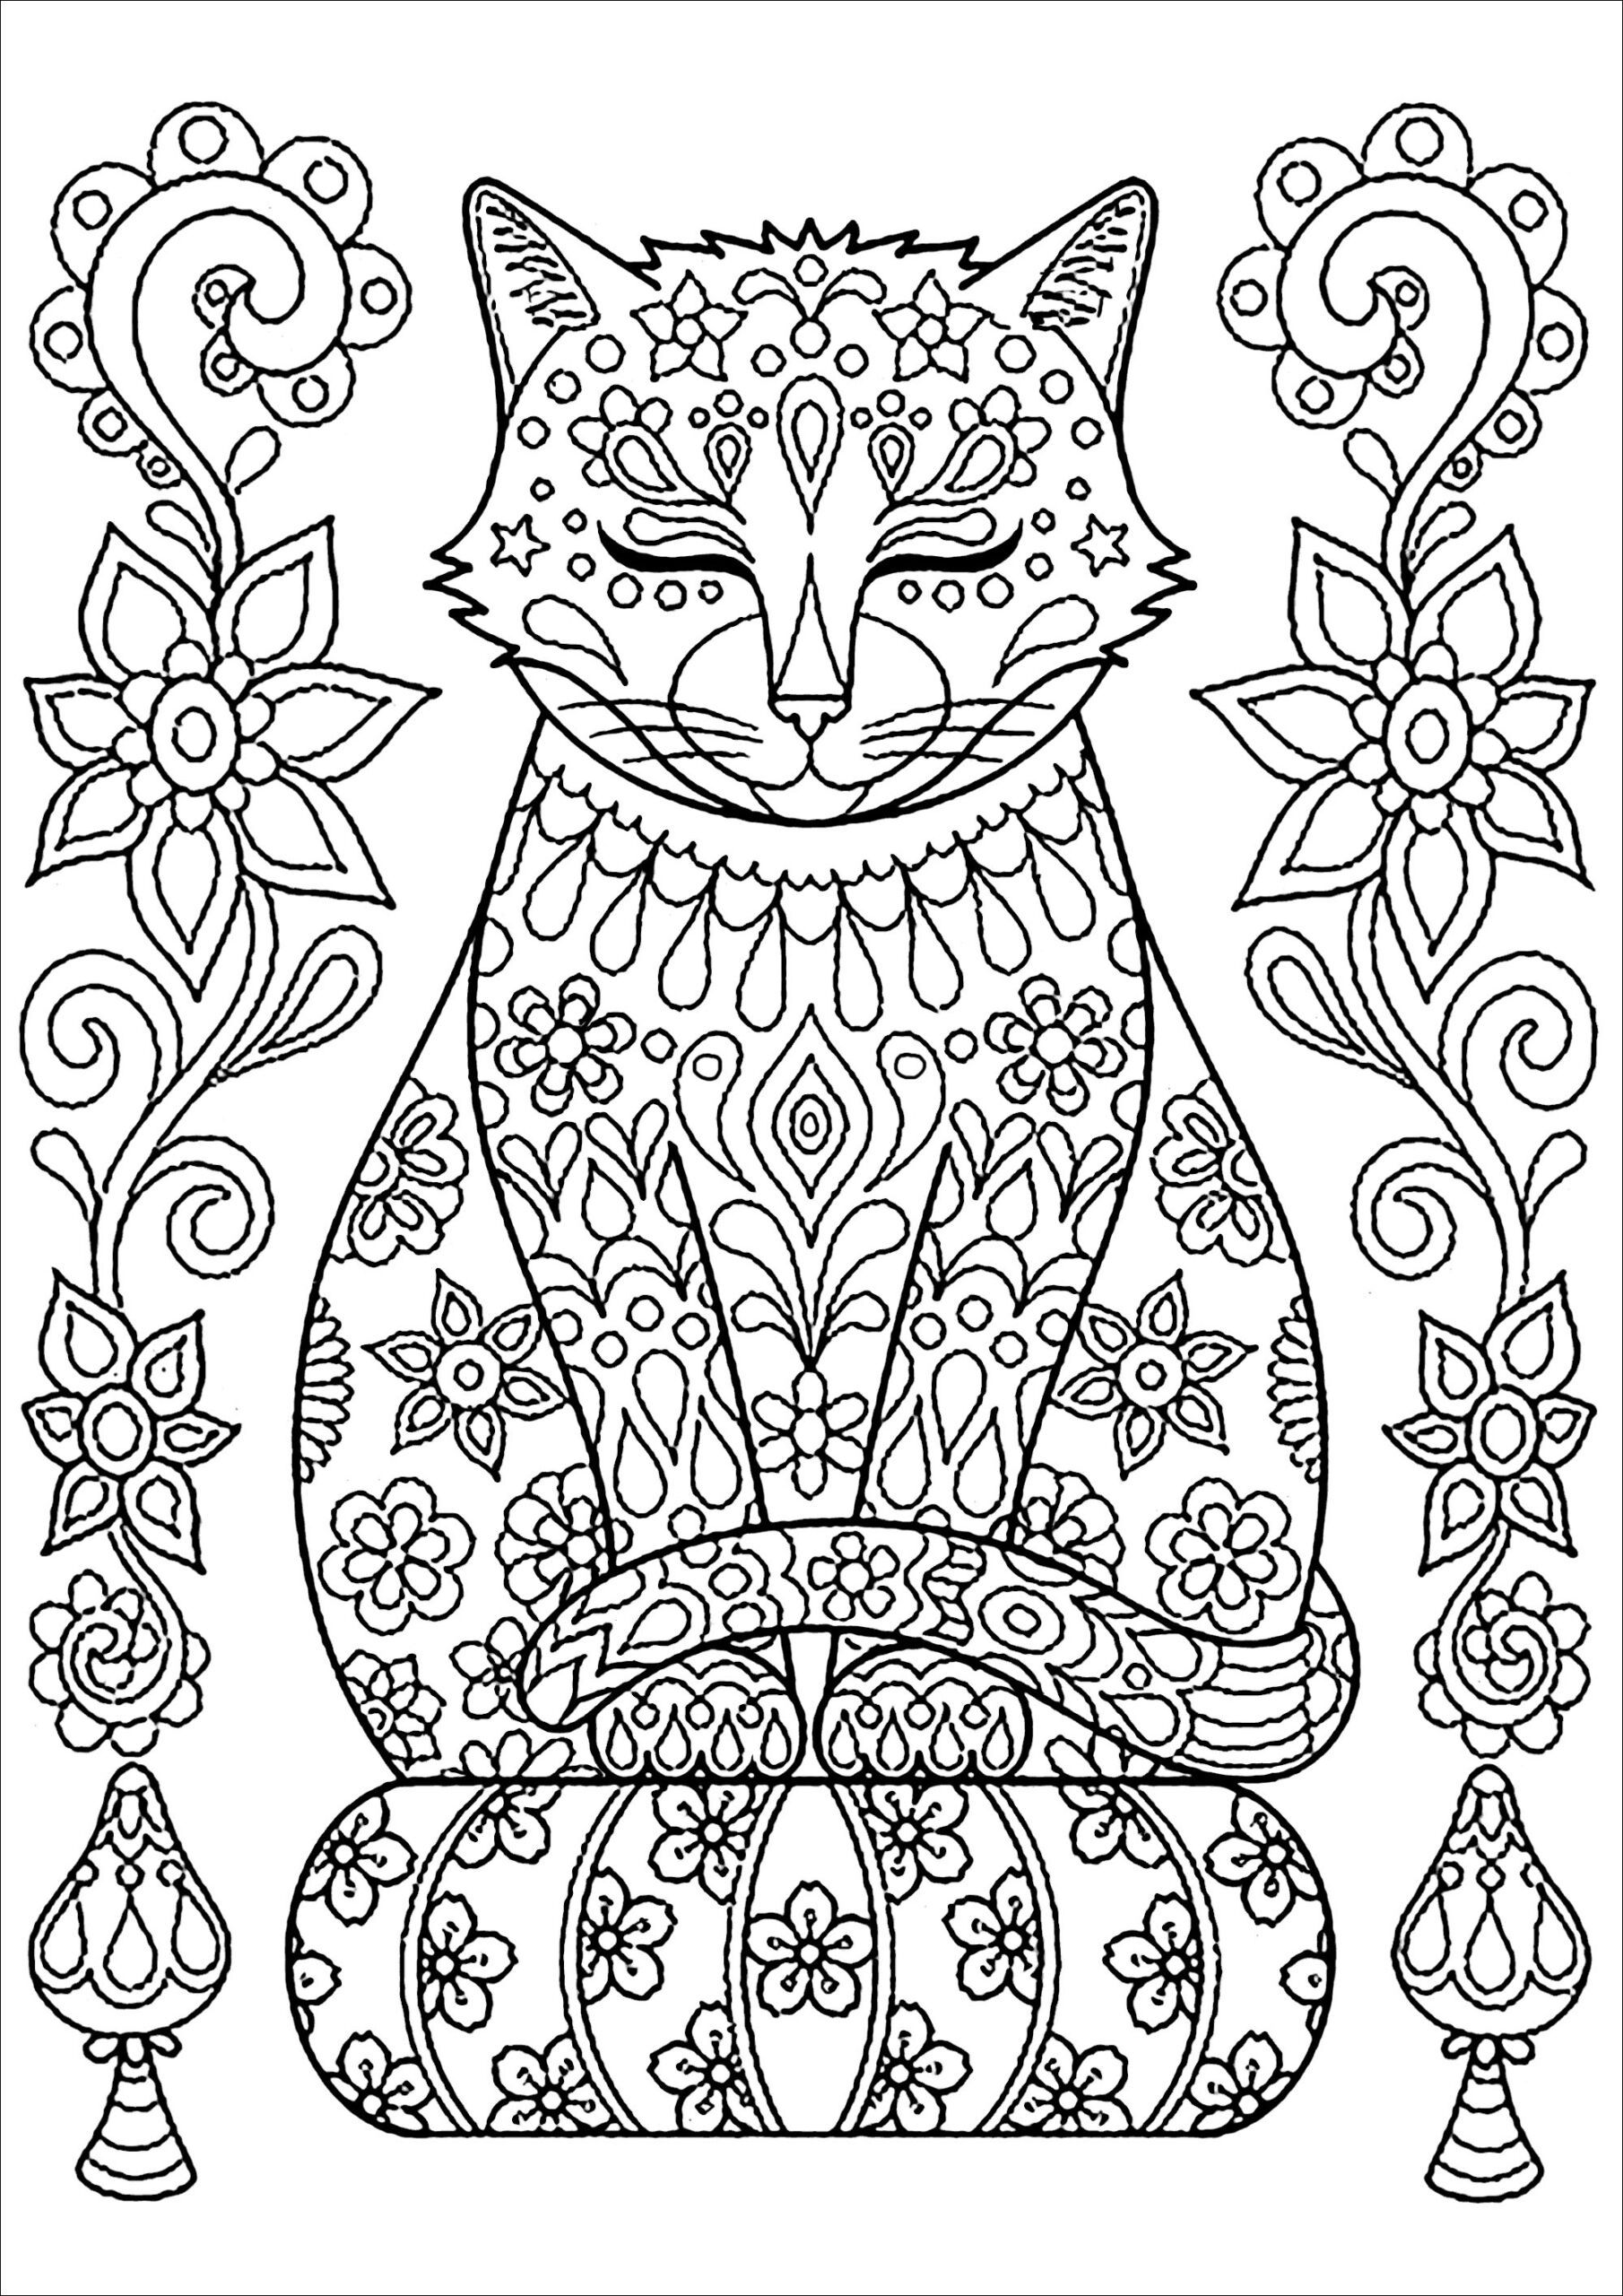 23 Incroyable Coloriage De Chaton Photograph In 2020 Cat Coloring Book Animal Coloring Pages Cat Coloring Page